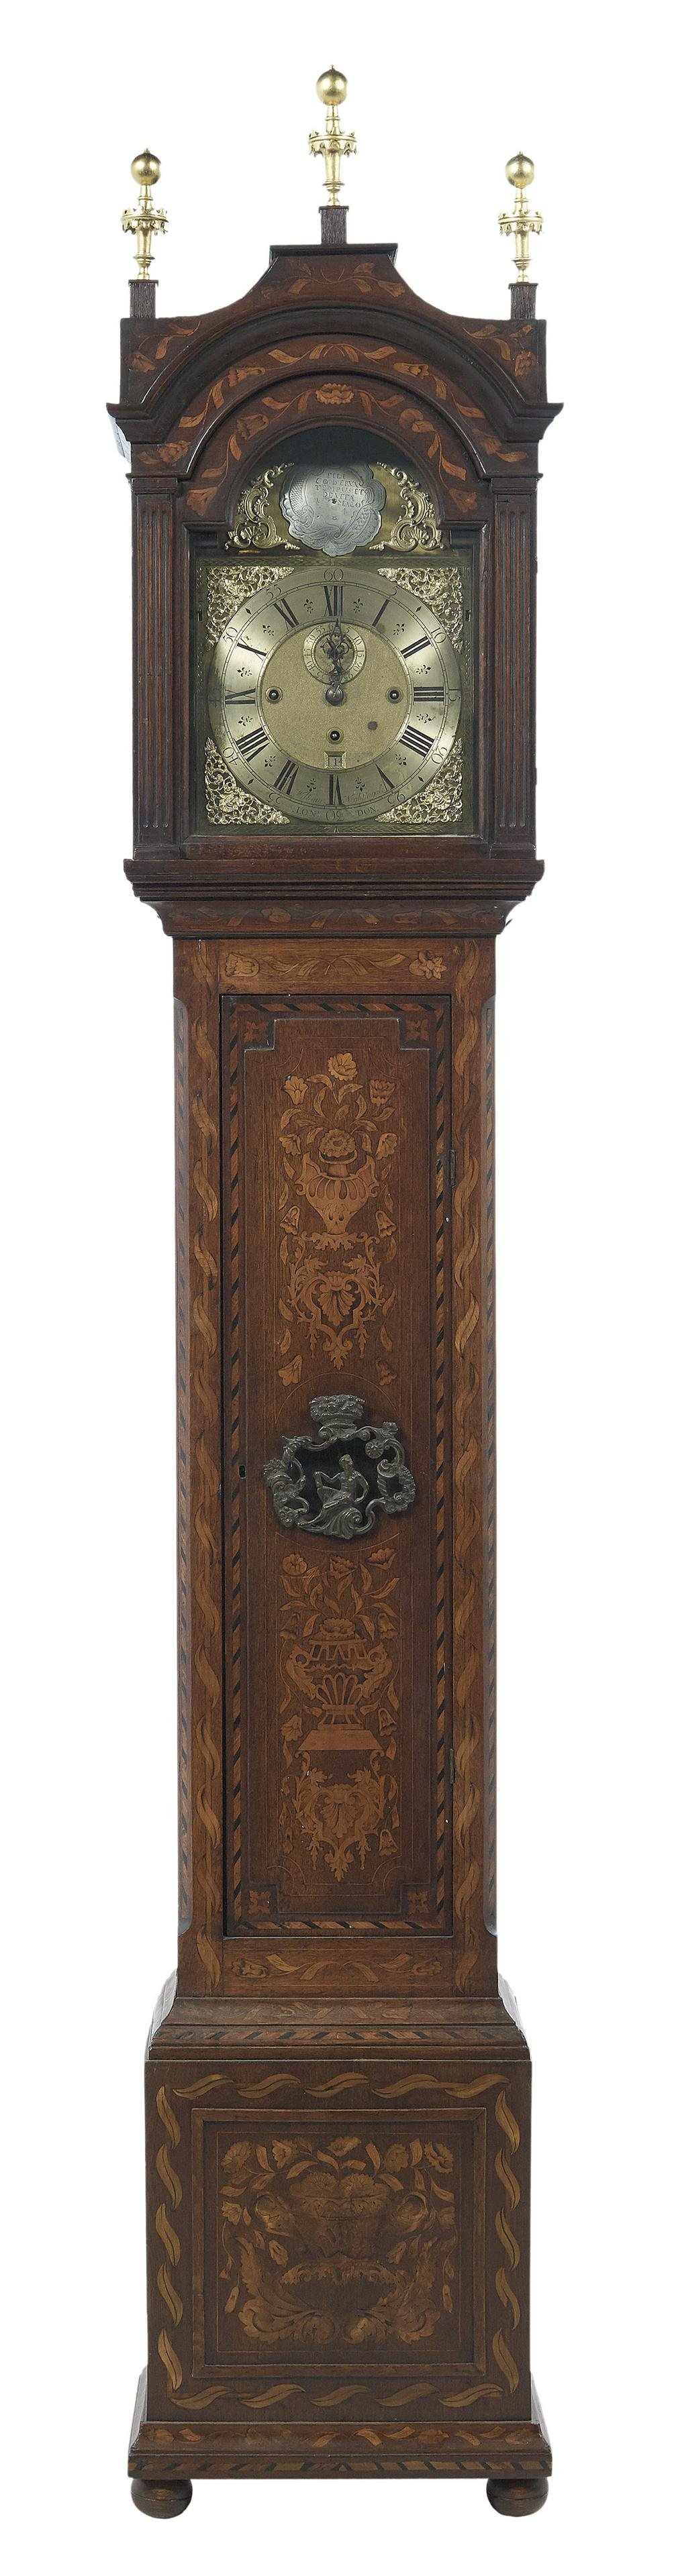 Dutch Marquetry-Inlaid Musical Tall Case Clock